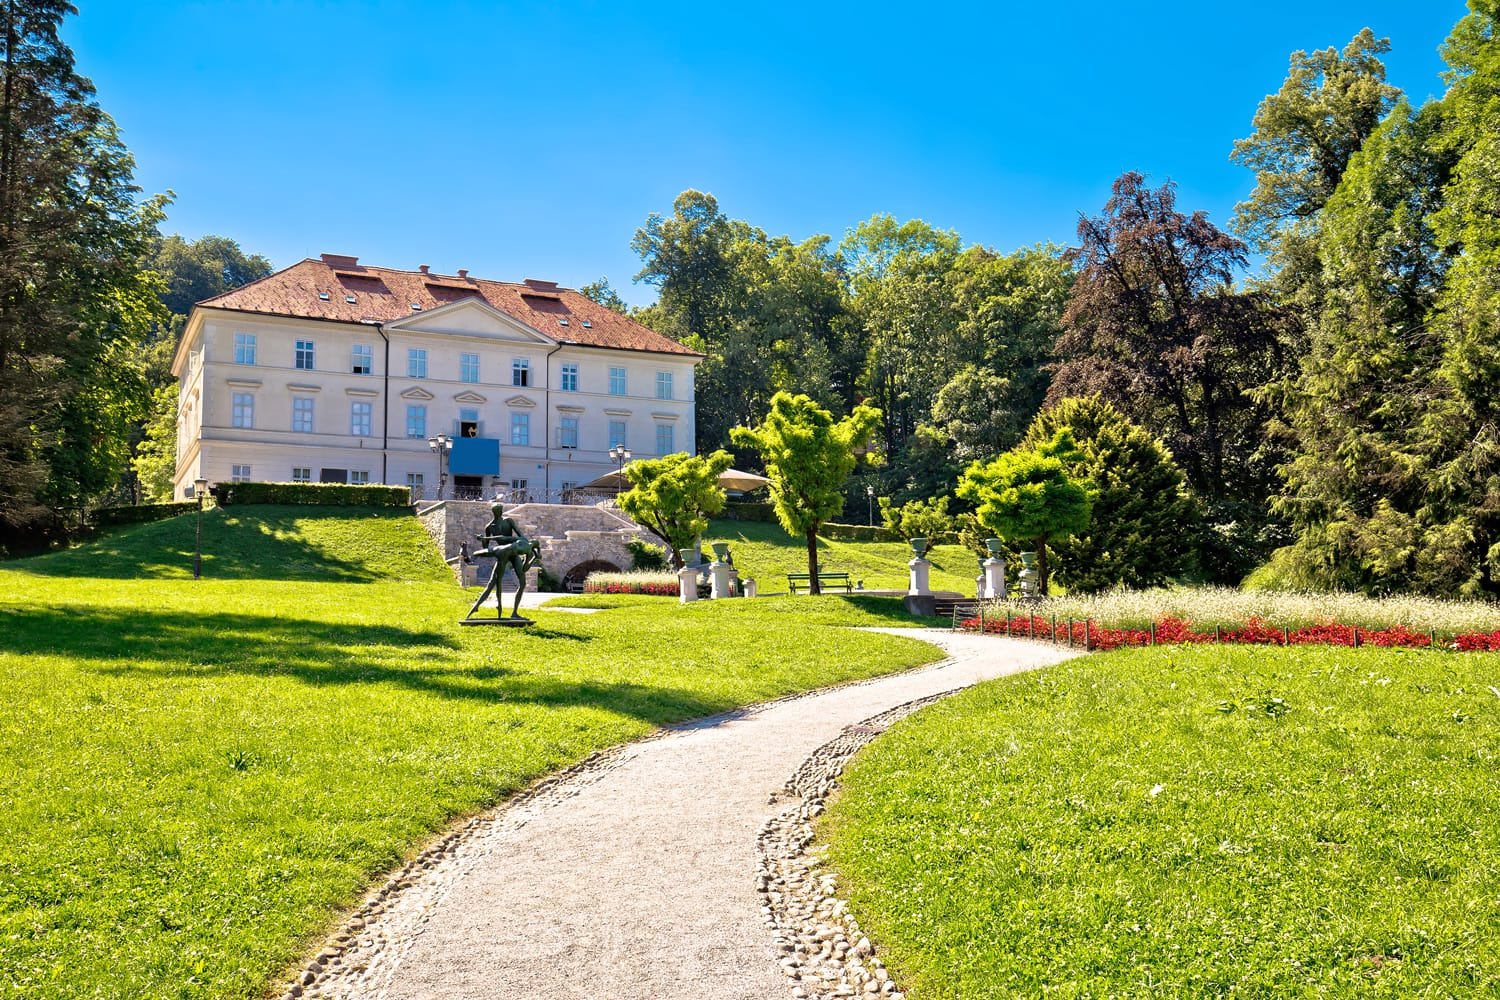 Tivoli park landscape in Ljubljana, green heart of capital of Slovenia